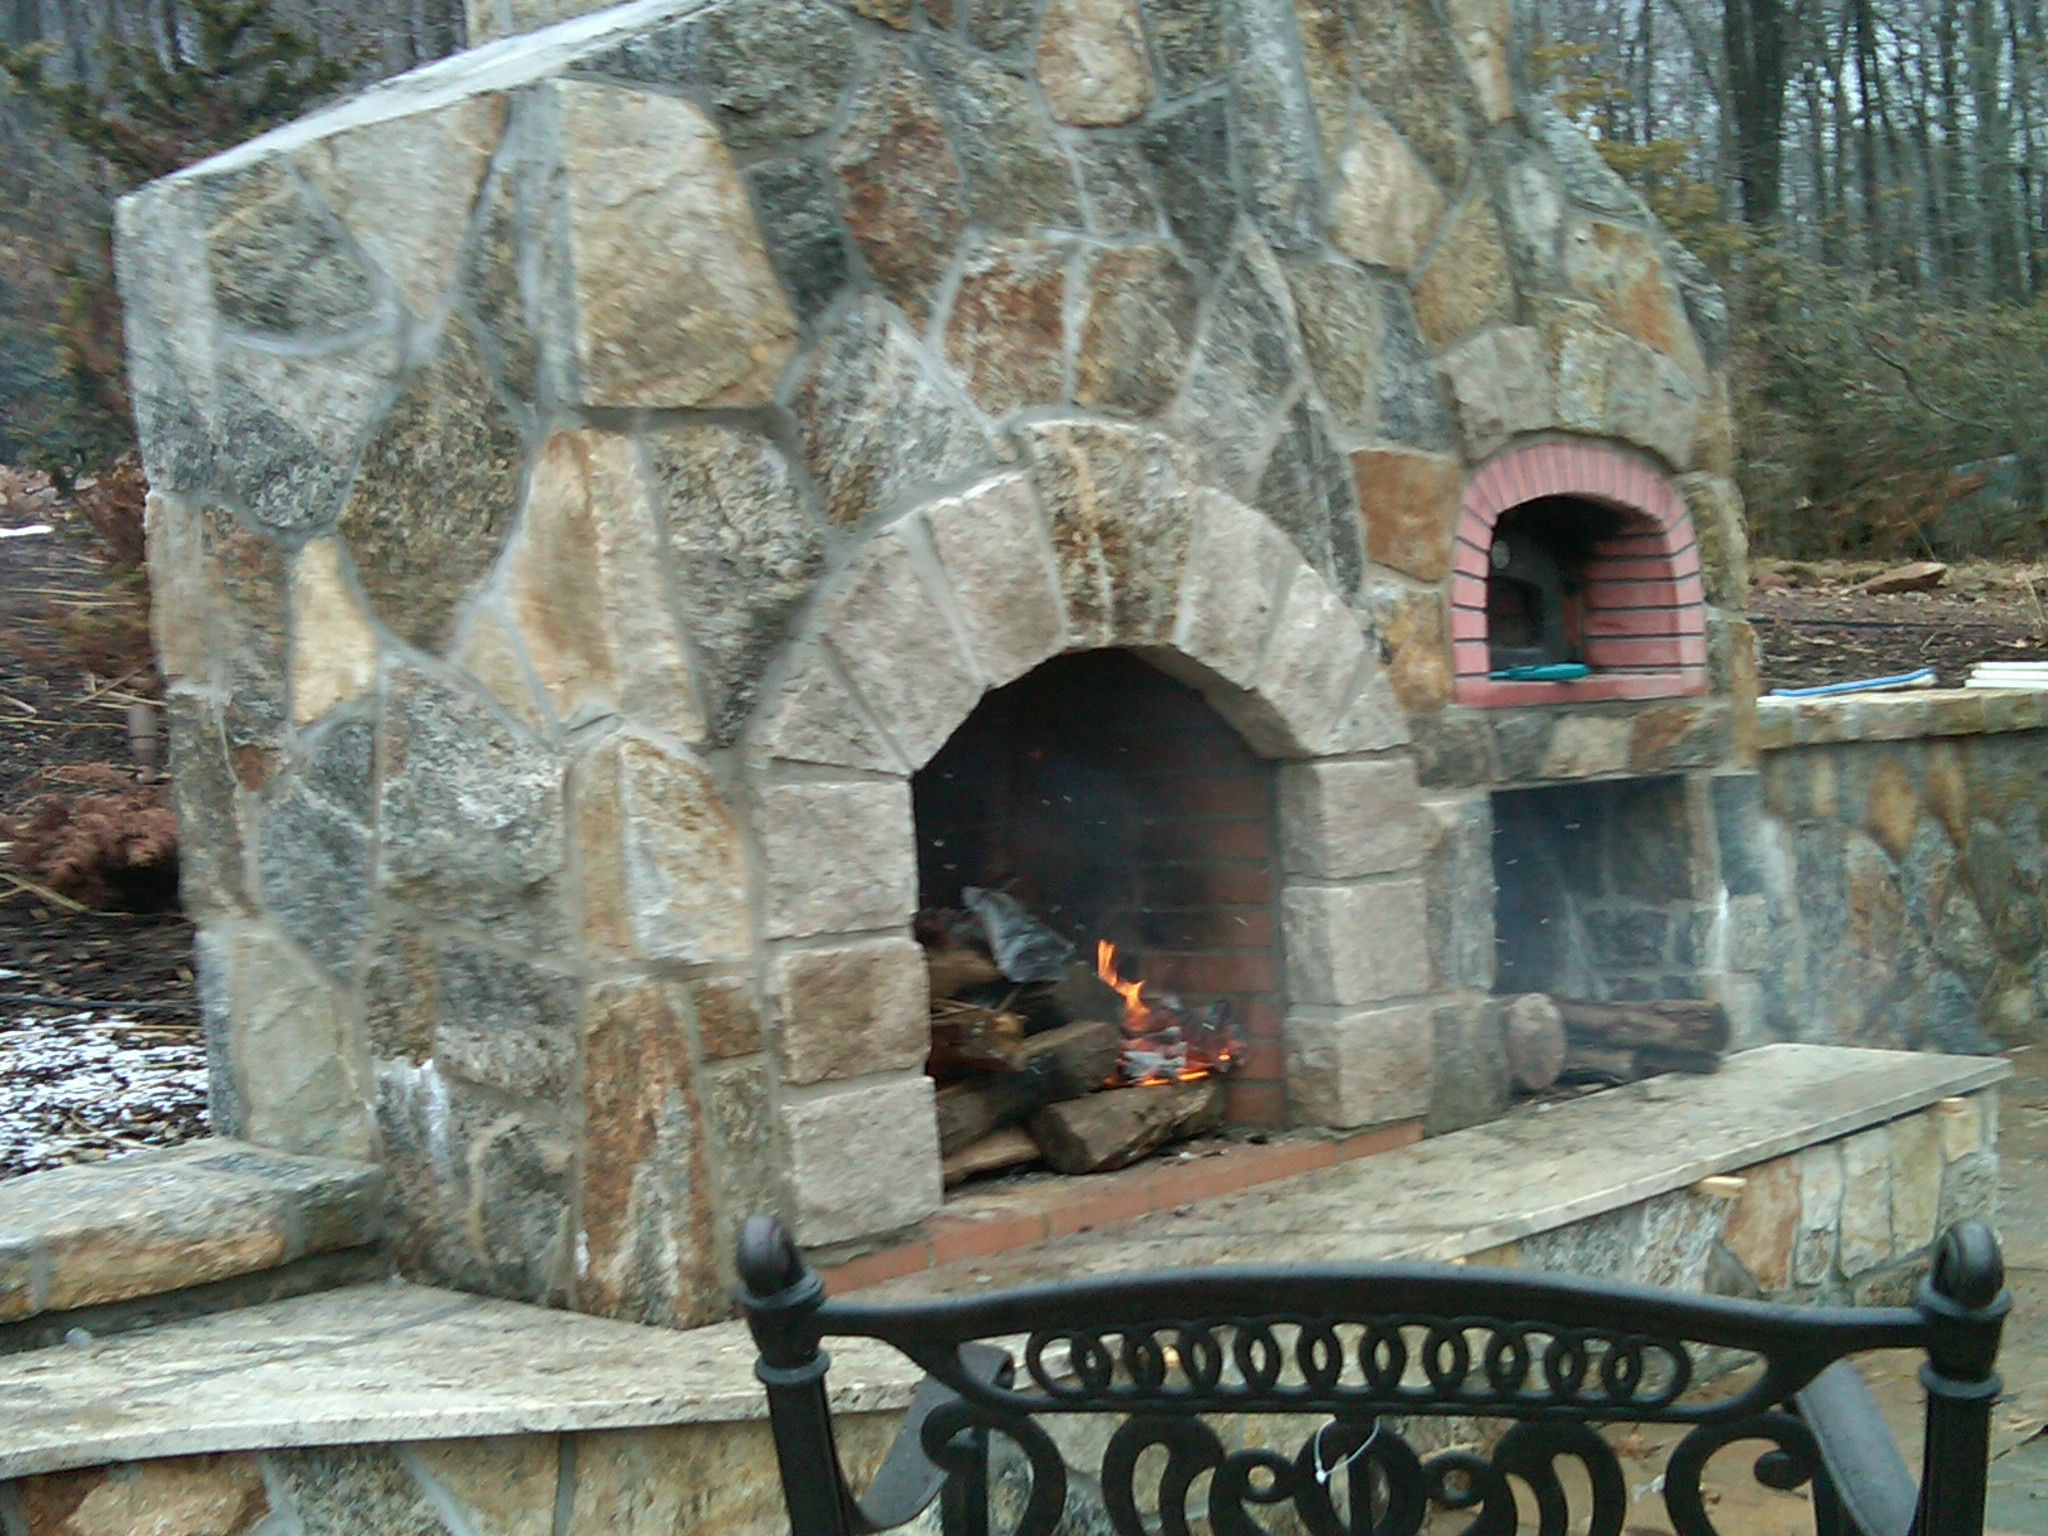 Outdoor Fireplace With Pizza Oven Plans Caurius